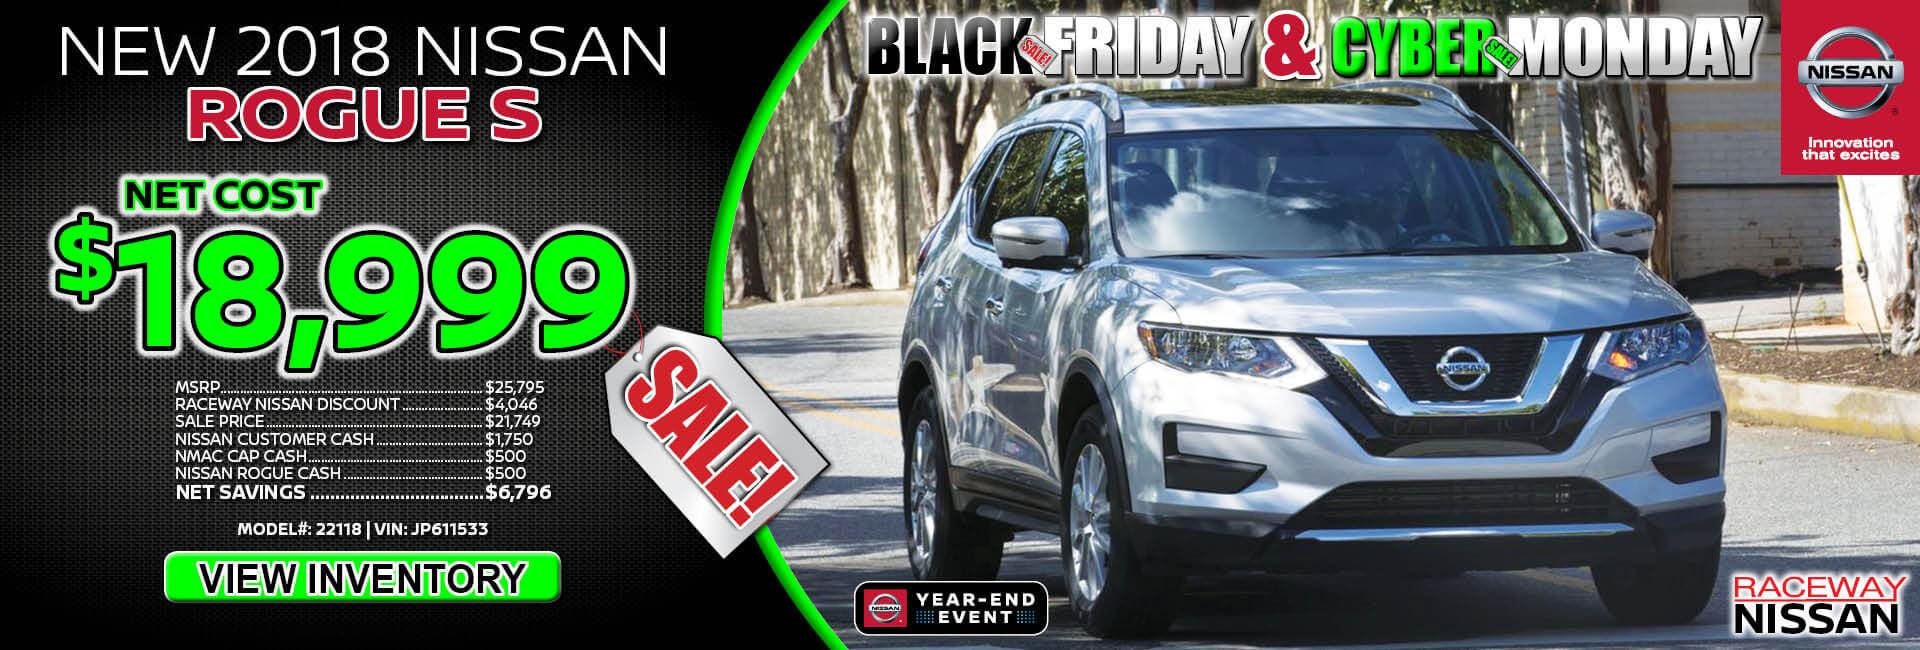 Nissan Rogue $18,999 Purchase